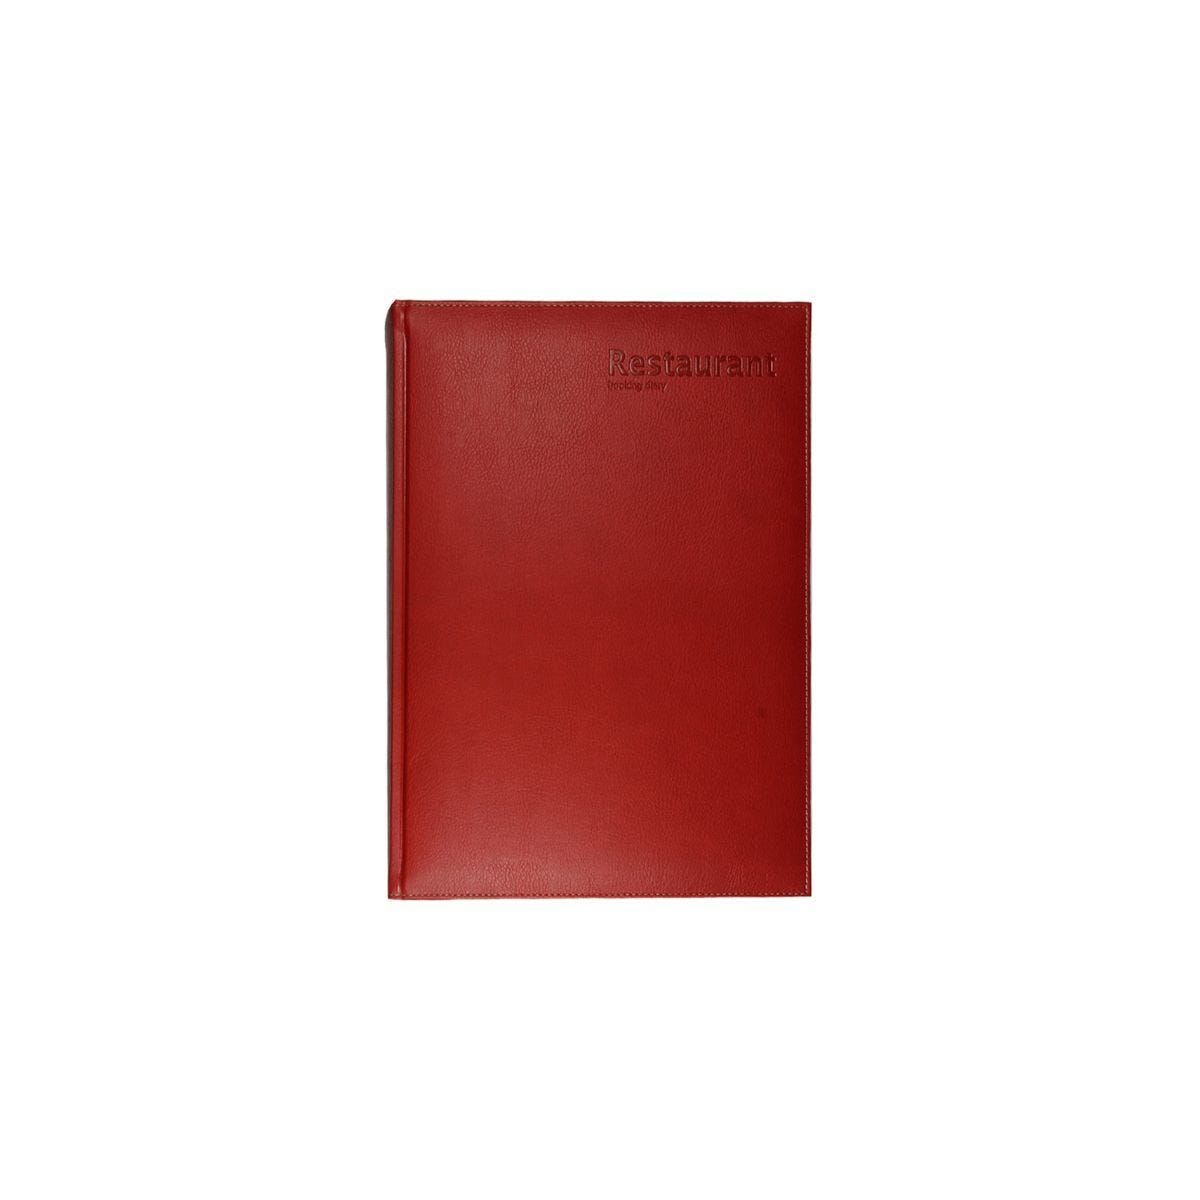 Castelli Restaurant Booking Diary Red